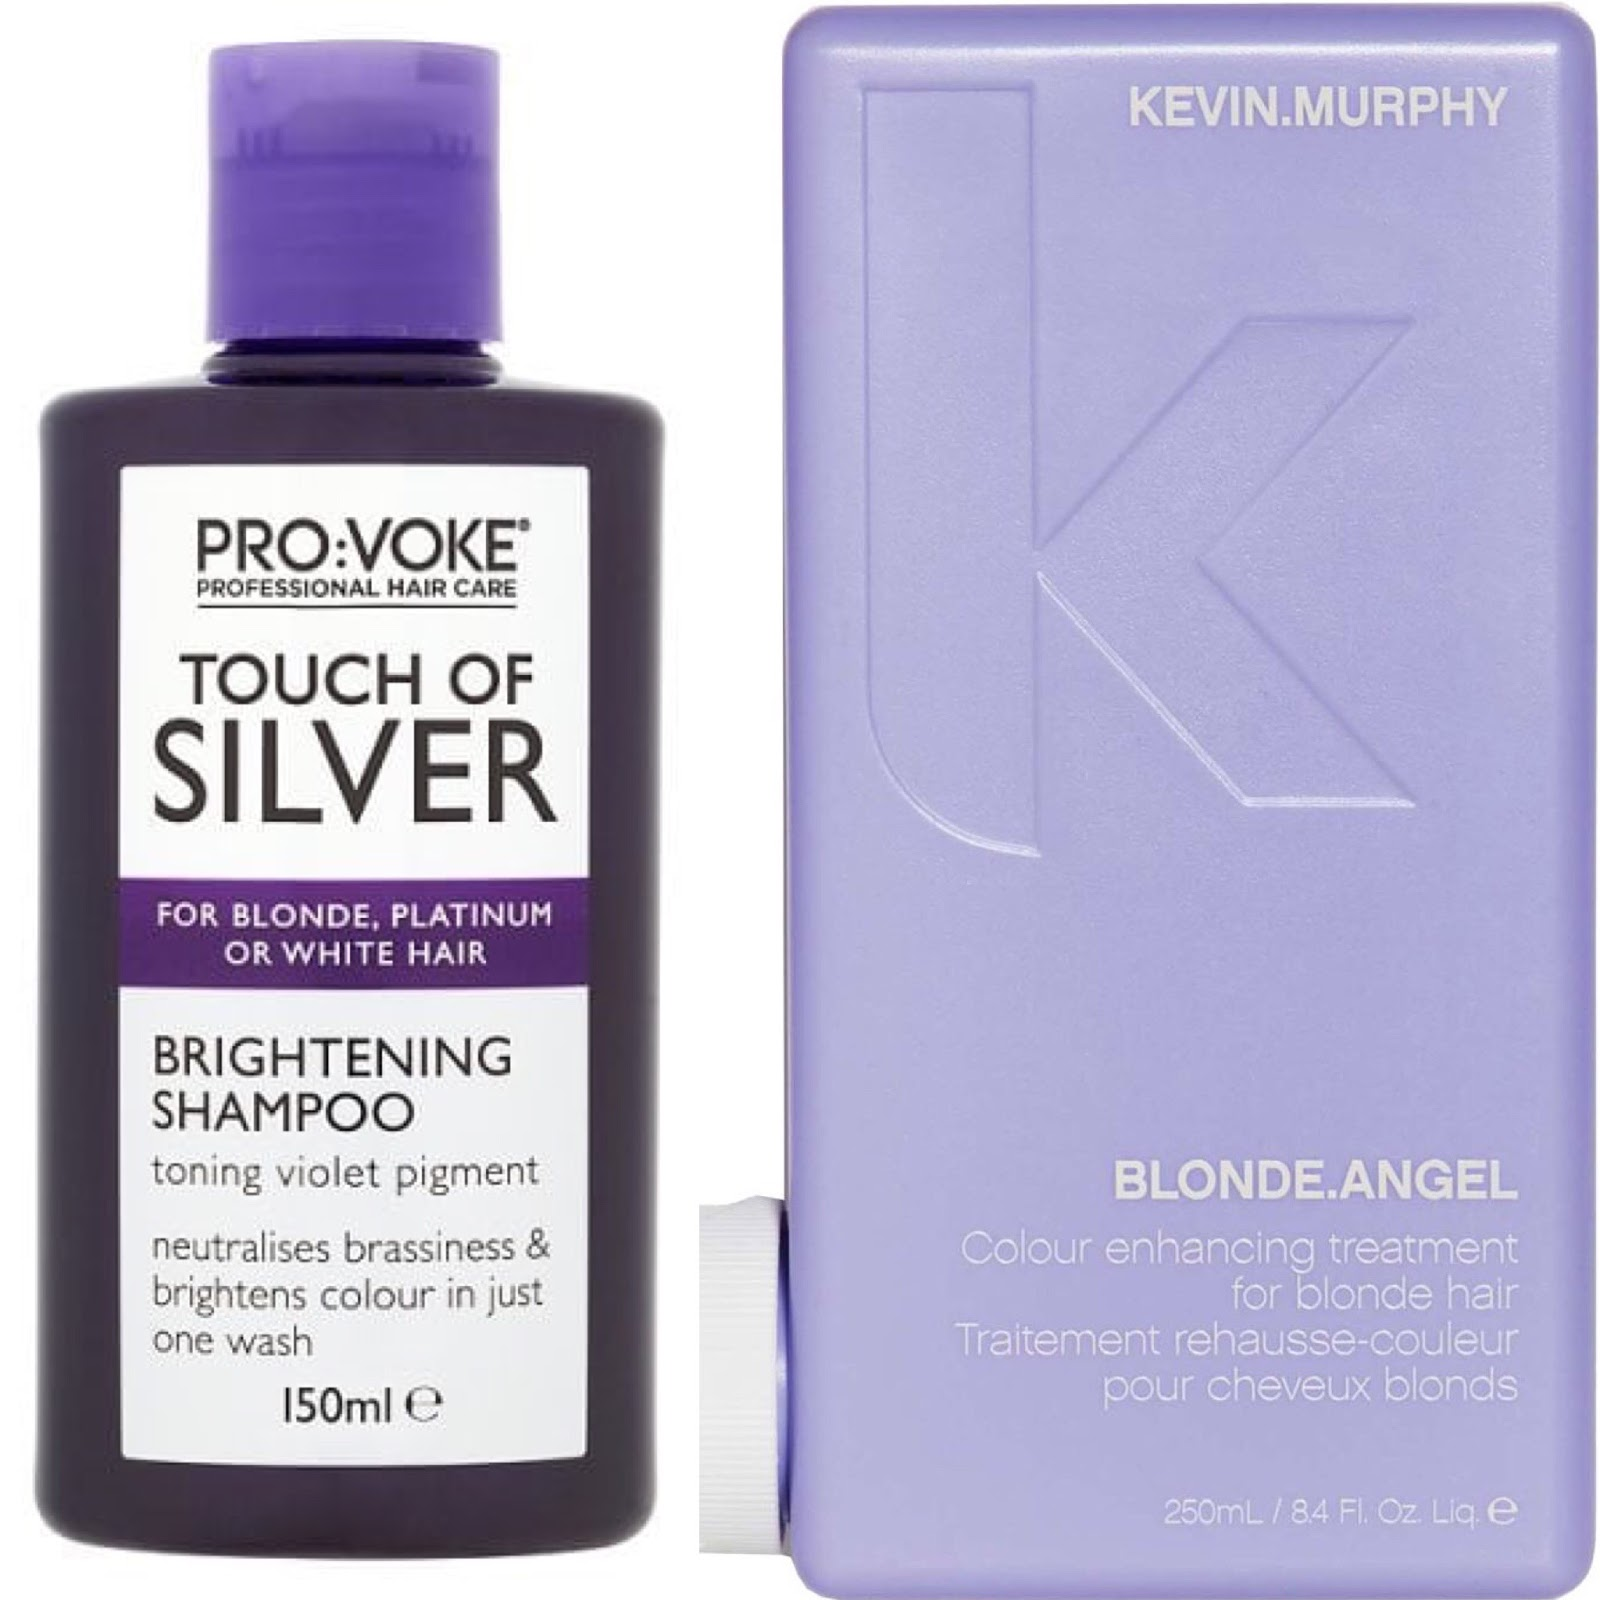 Populaire K.M Blonde Angel vs Pro.Voke Touch of Silver | Aifric Rice VB92